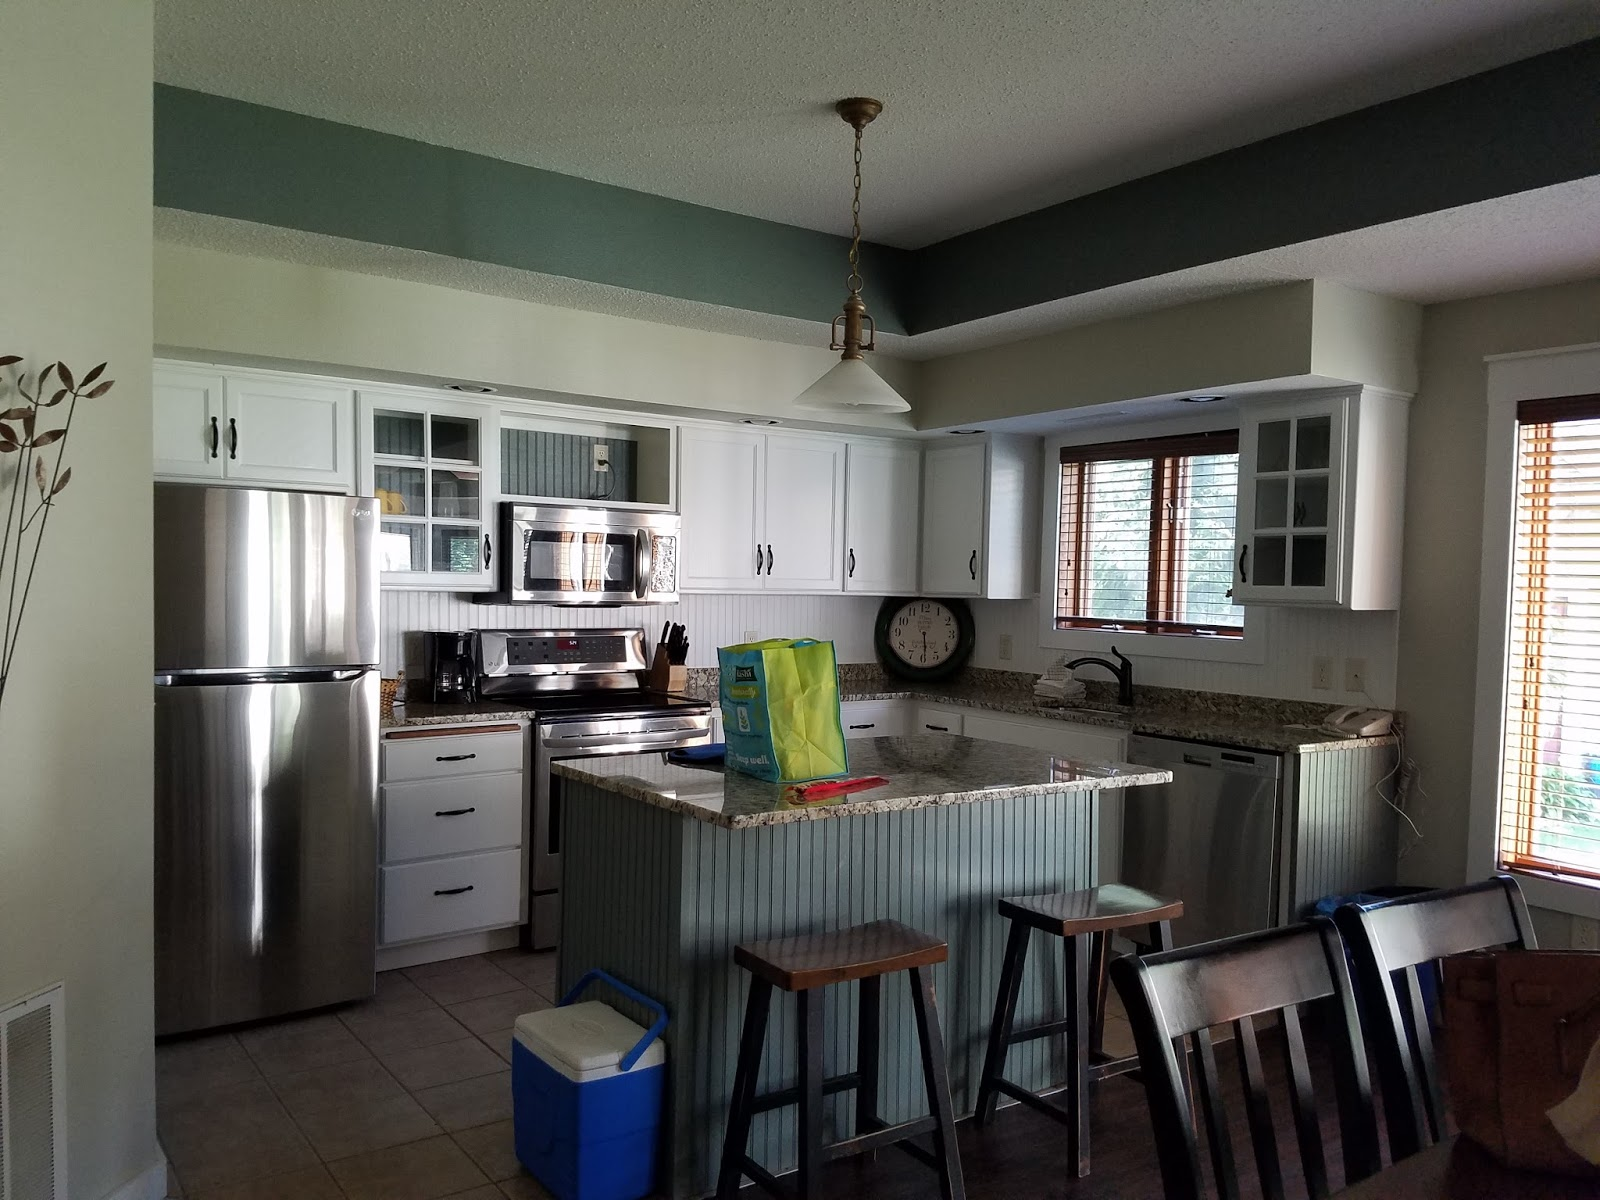 Kitchen Tvs Confessions Of A Frugal Mind Family Travel Review Grand View